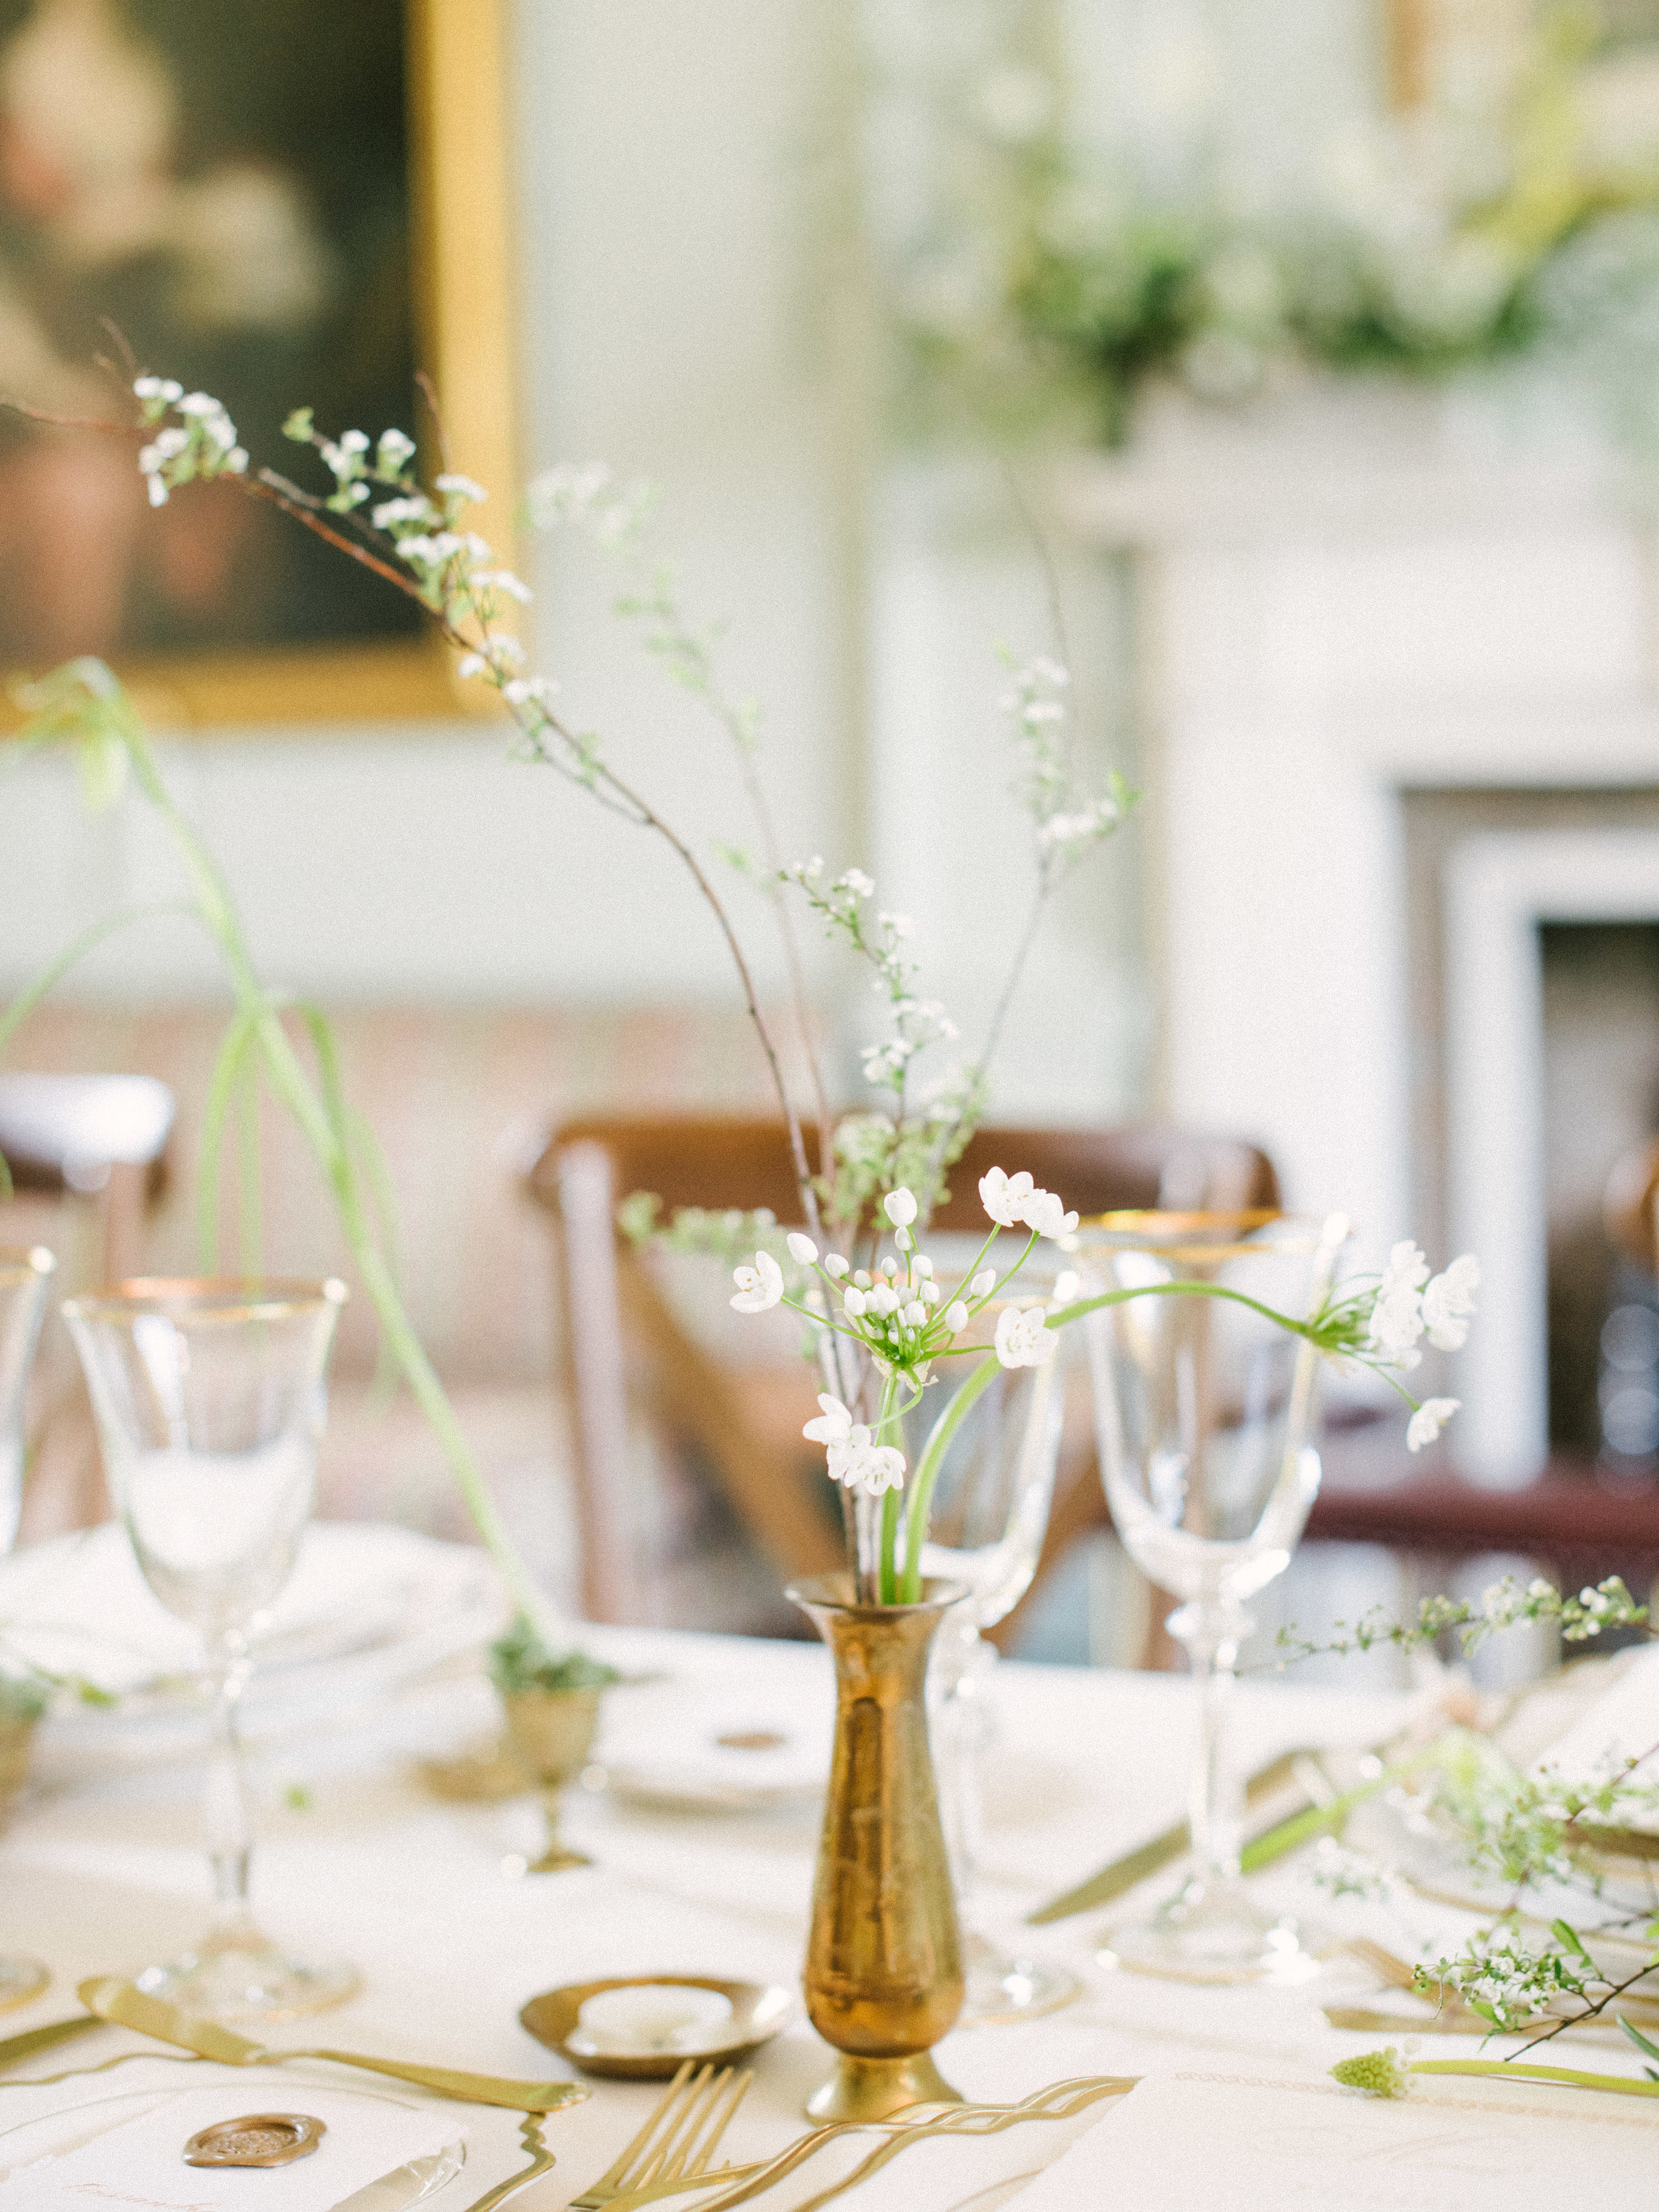 The Timeless Stylist-Elegant and Timeless Dinner Party Tablescape-Stately Home Venue